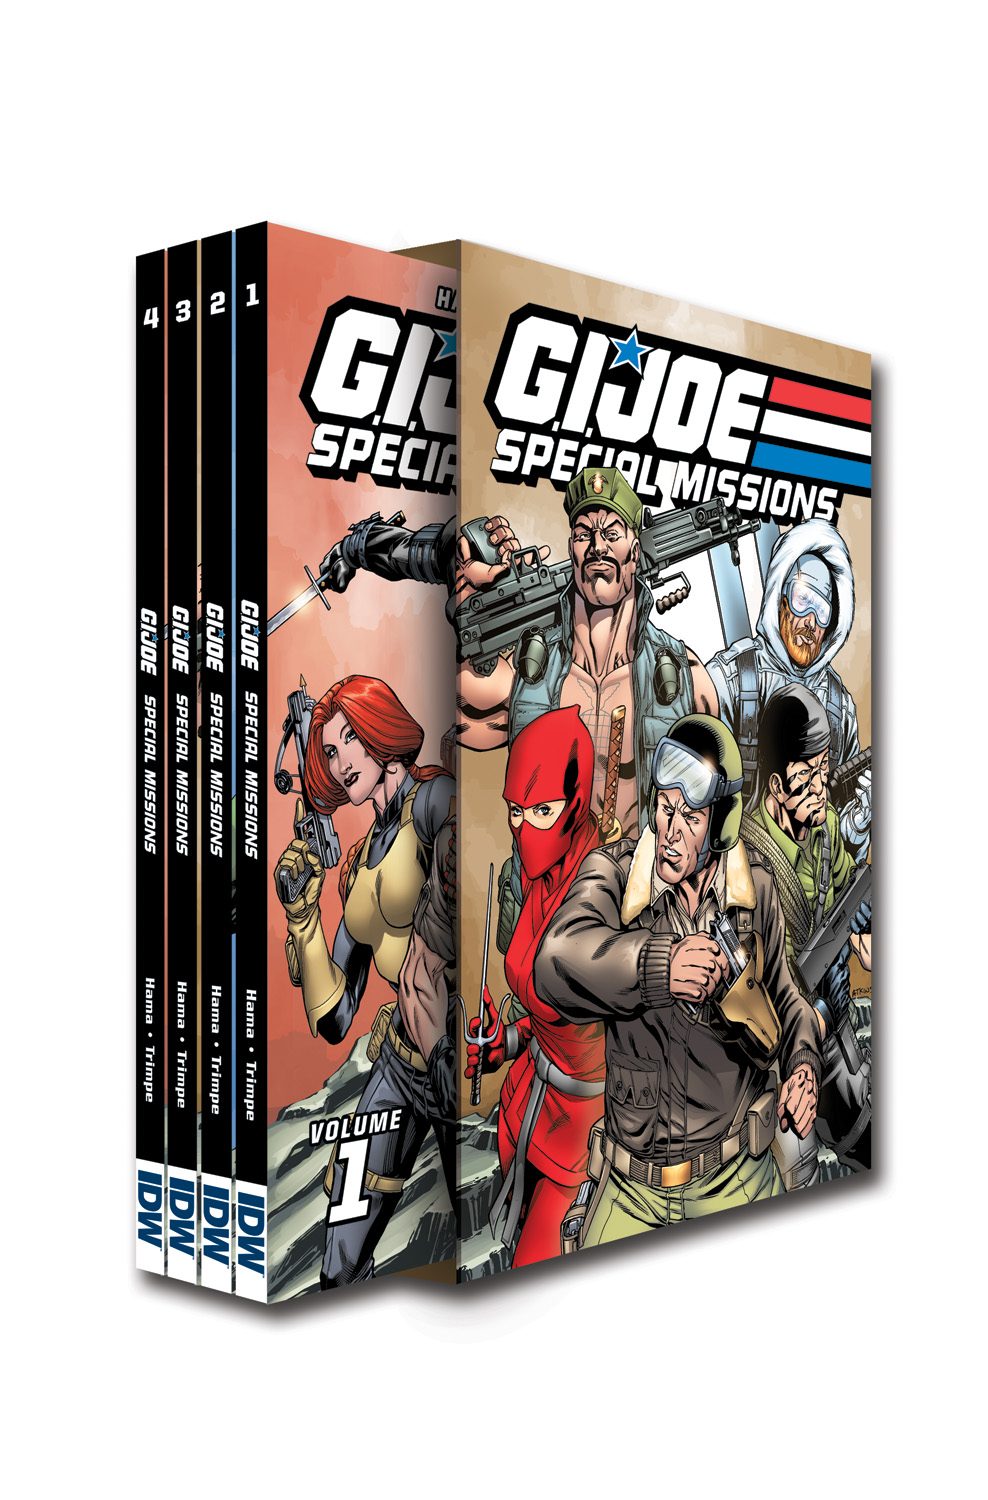 G.I. JOE Special Missions Box Set